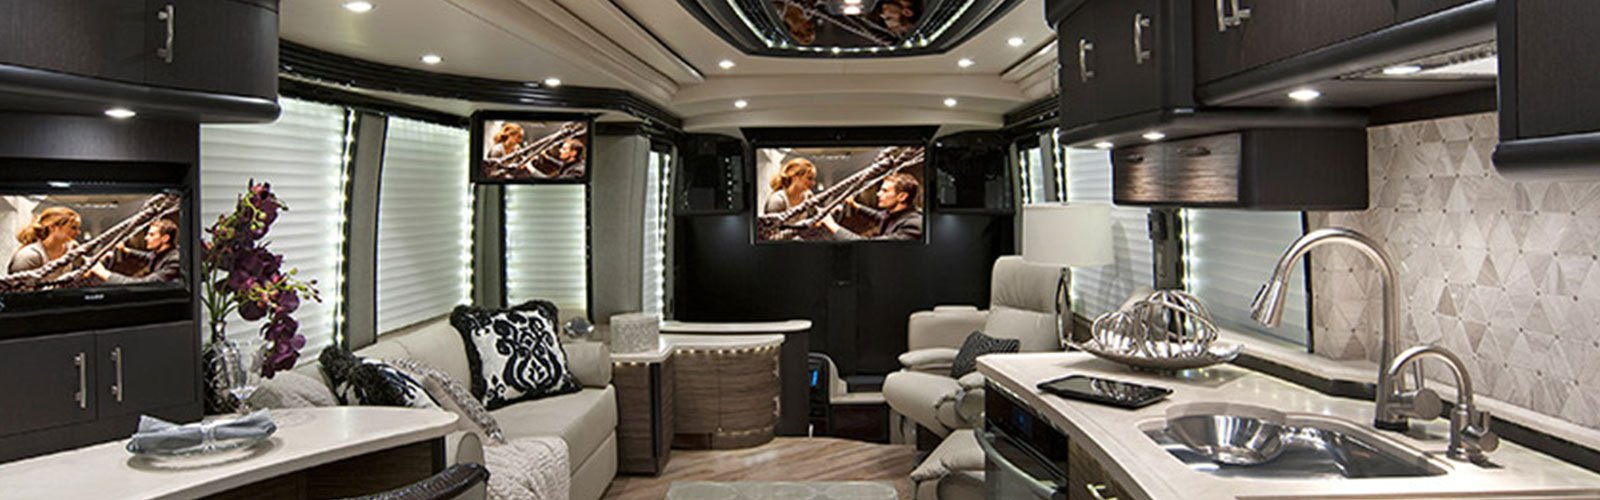 Interior of an RV with multiple television screens and surround sound (background)